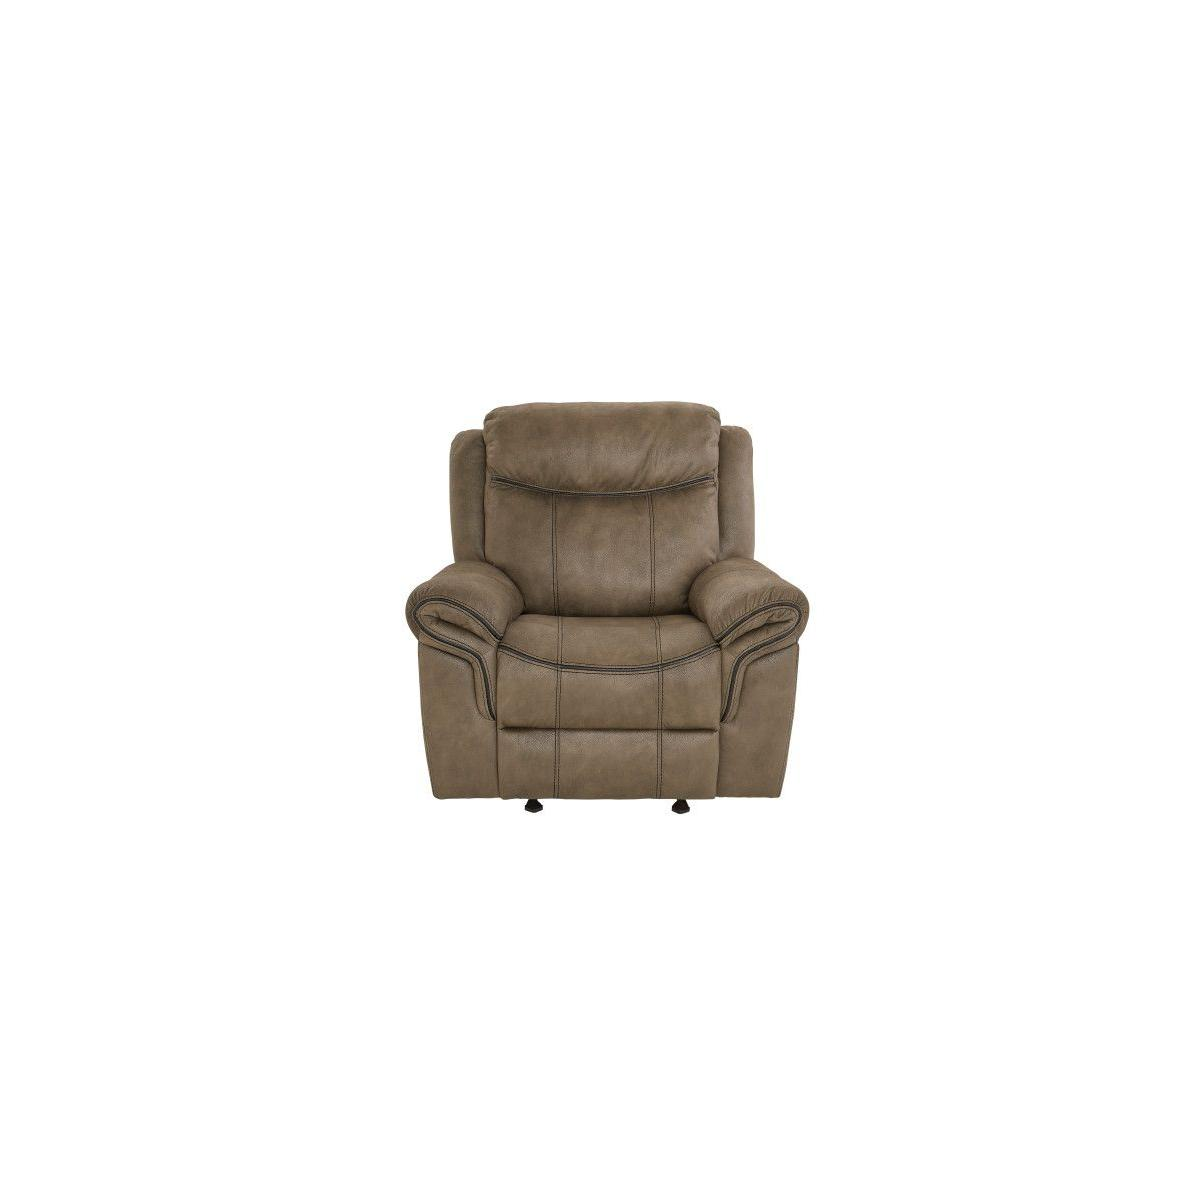 Knoxville Manual Motion Glider Recliner, Mocha